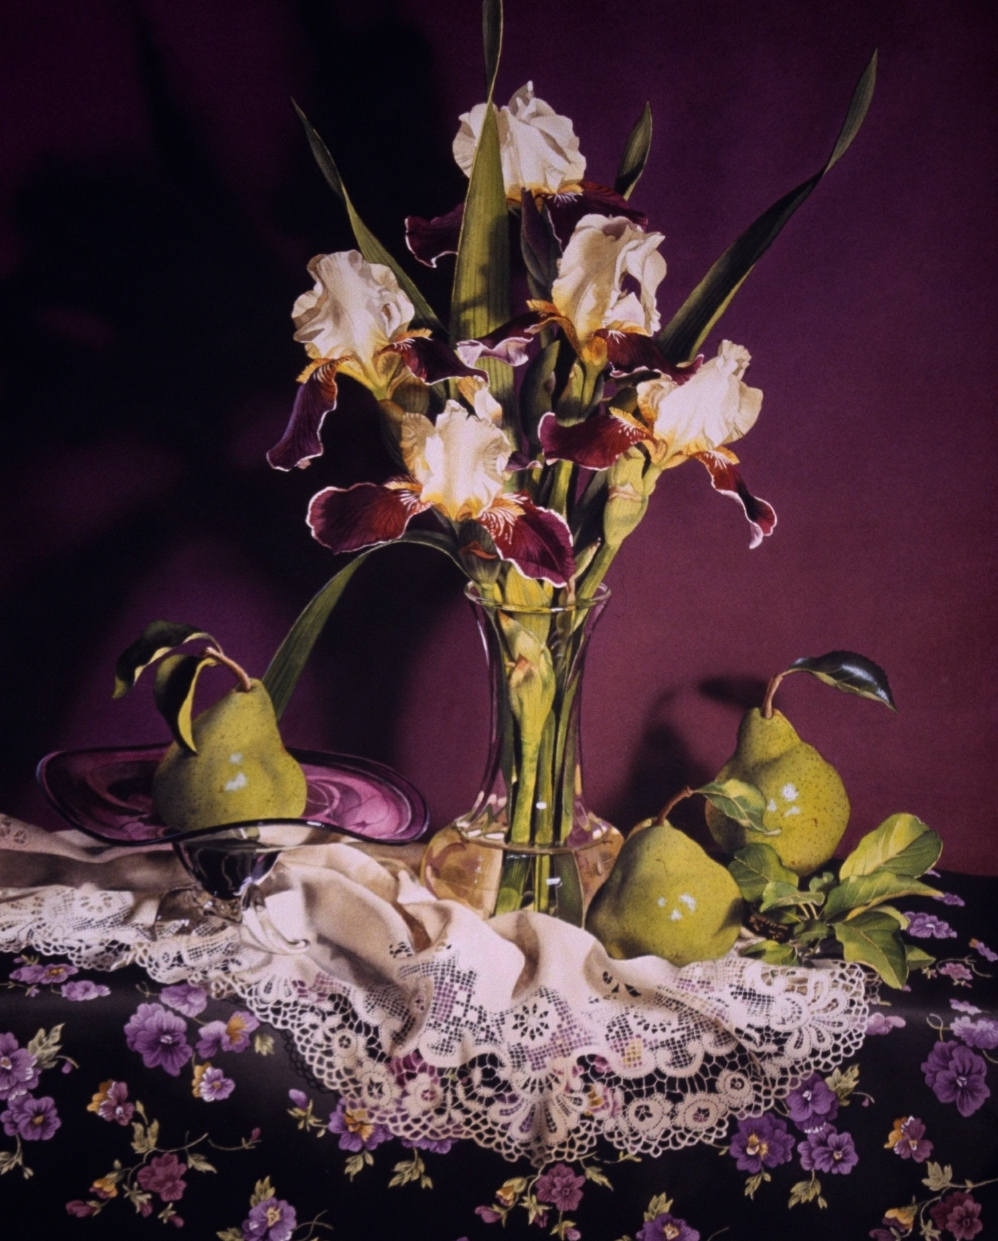 """Still Life with Irises & Pears"" original fine art by Jacqueline Gnott, whs"